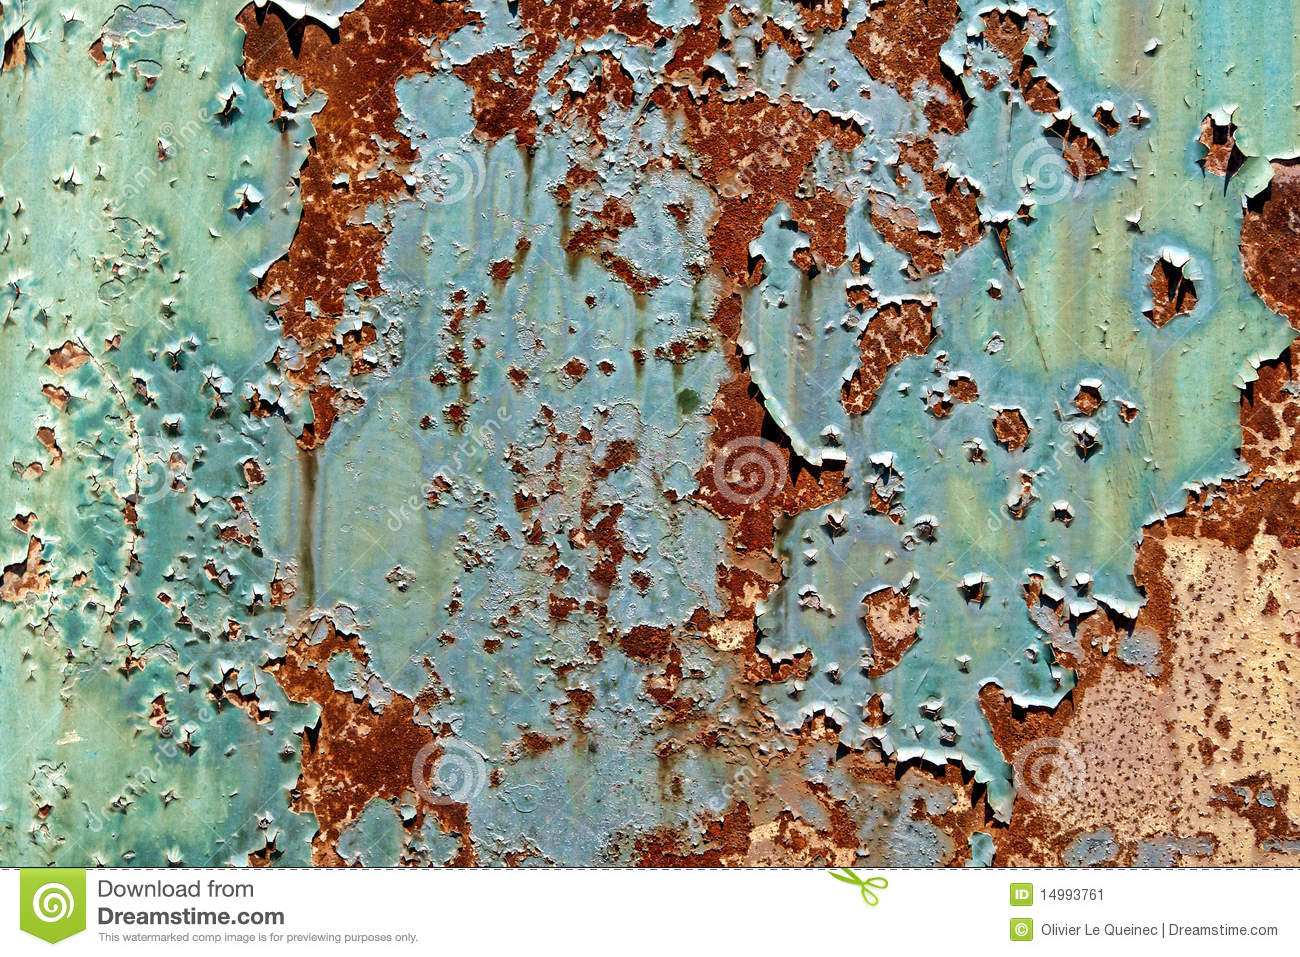 Old Peeling Paint on Rusty Metal Grunge Background